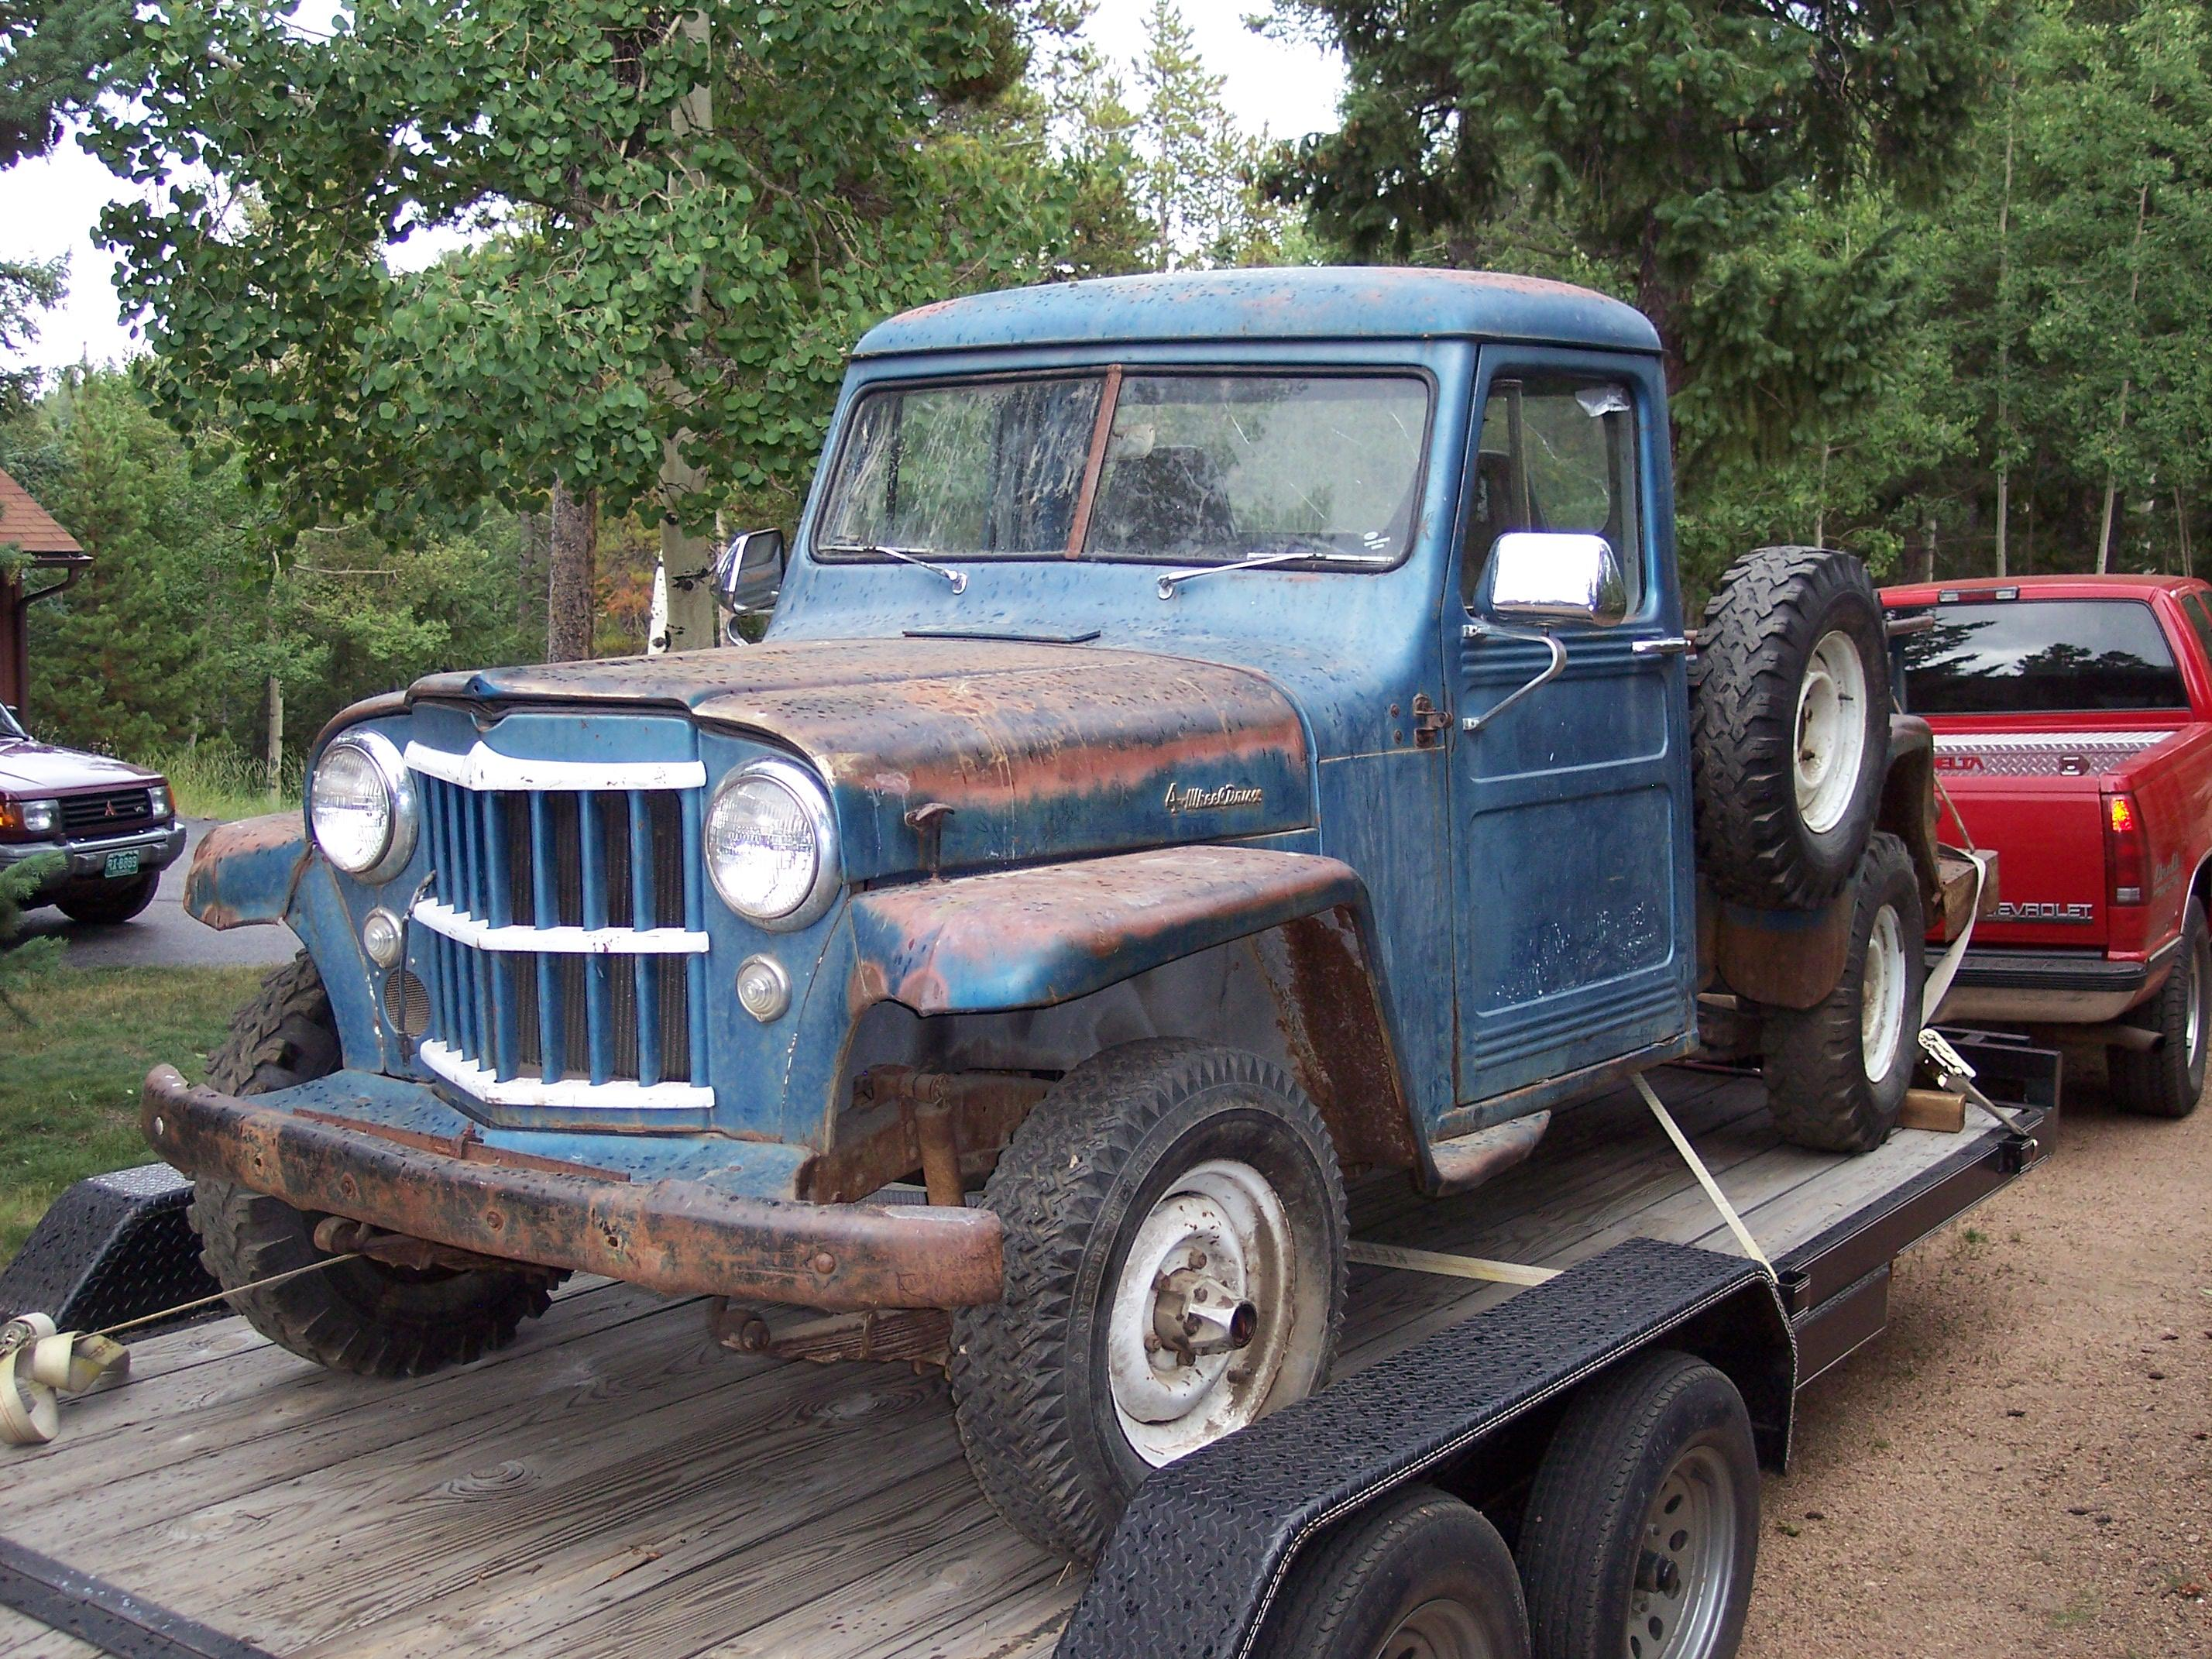 Pivnic's 1957 Willys Pickup